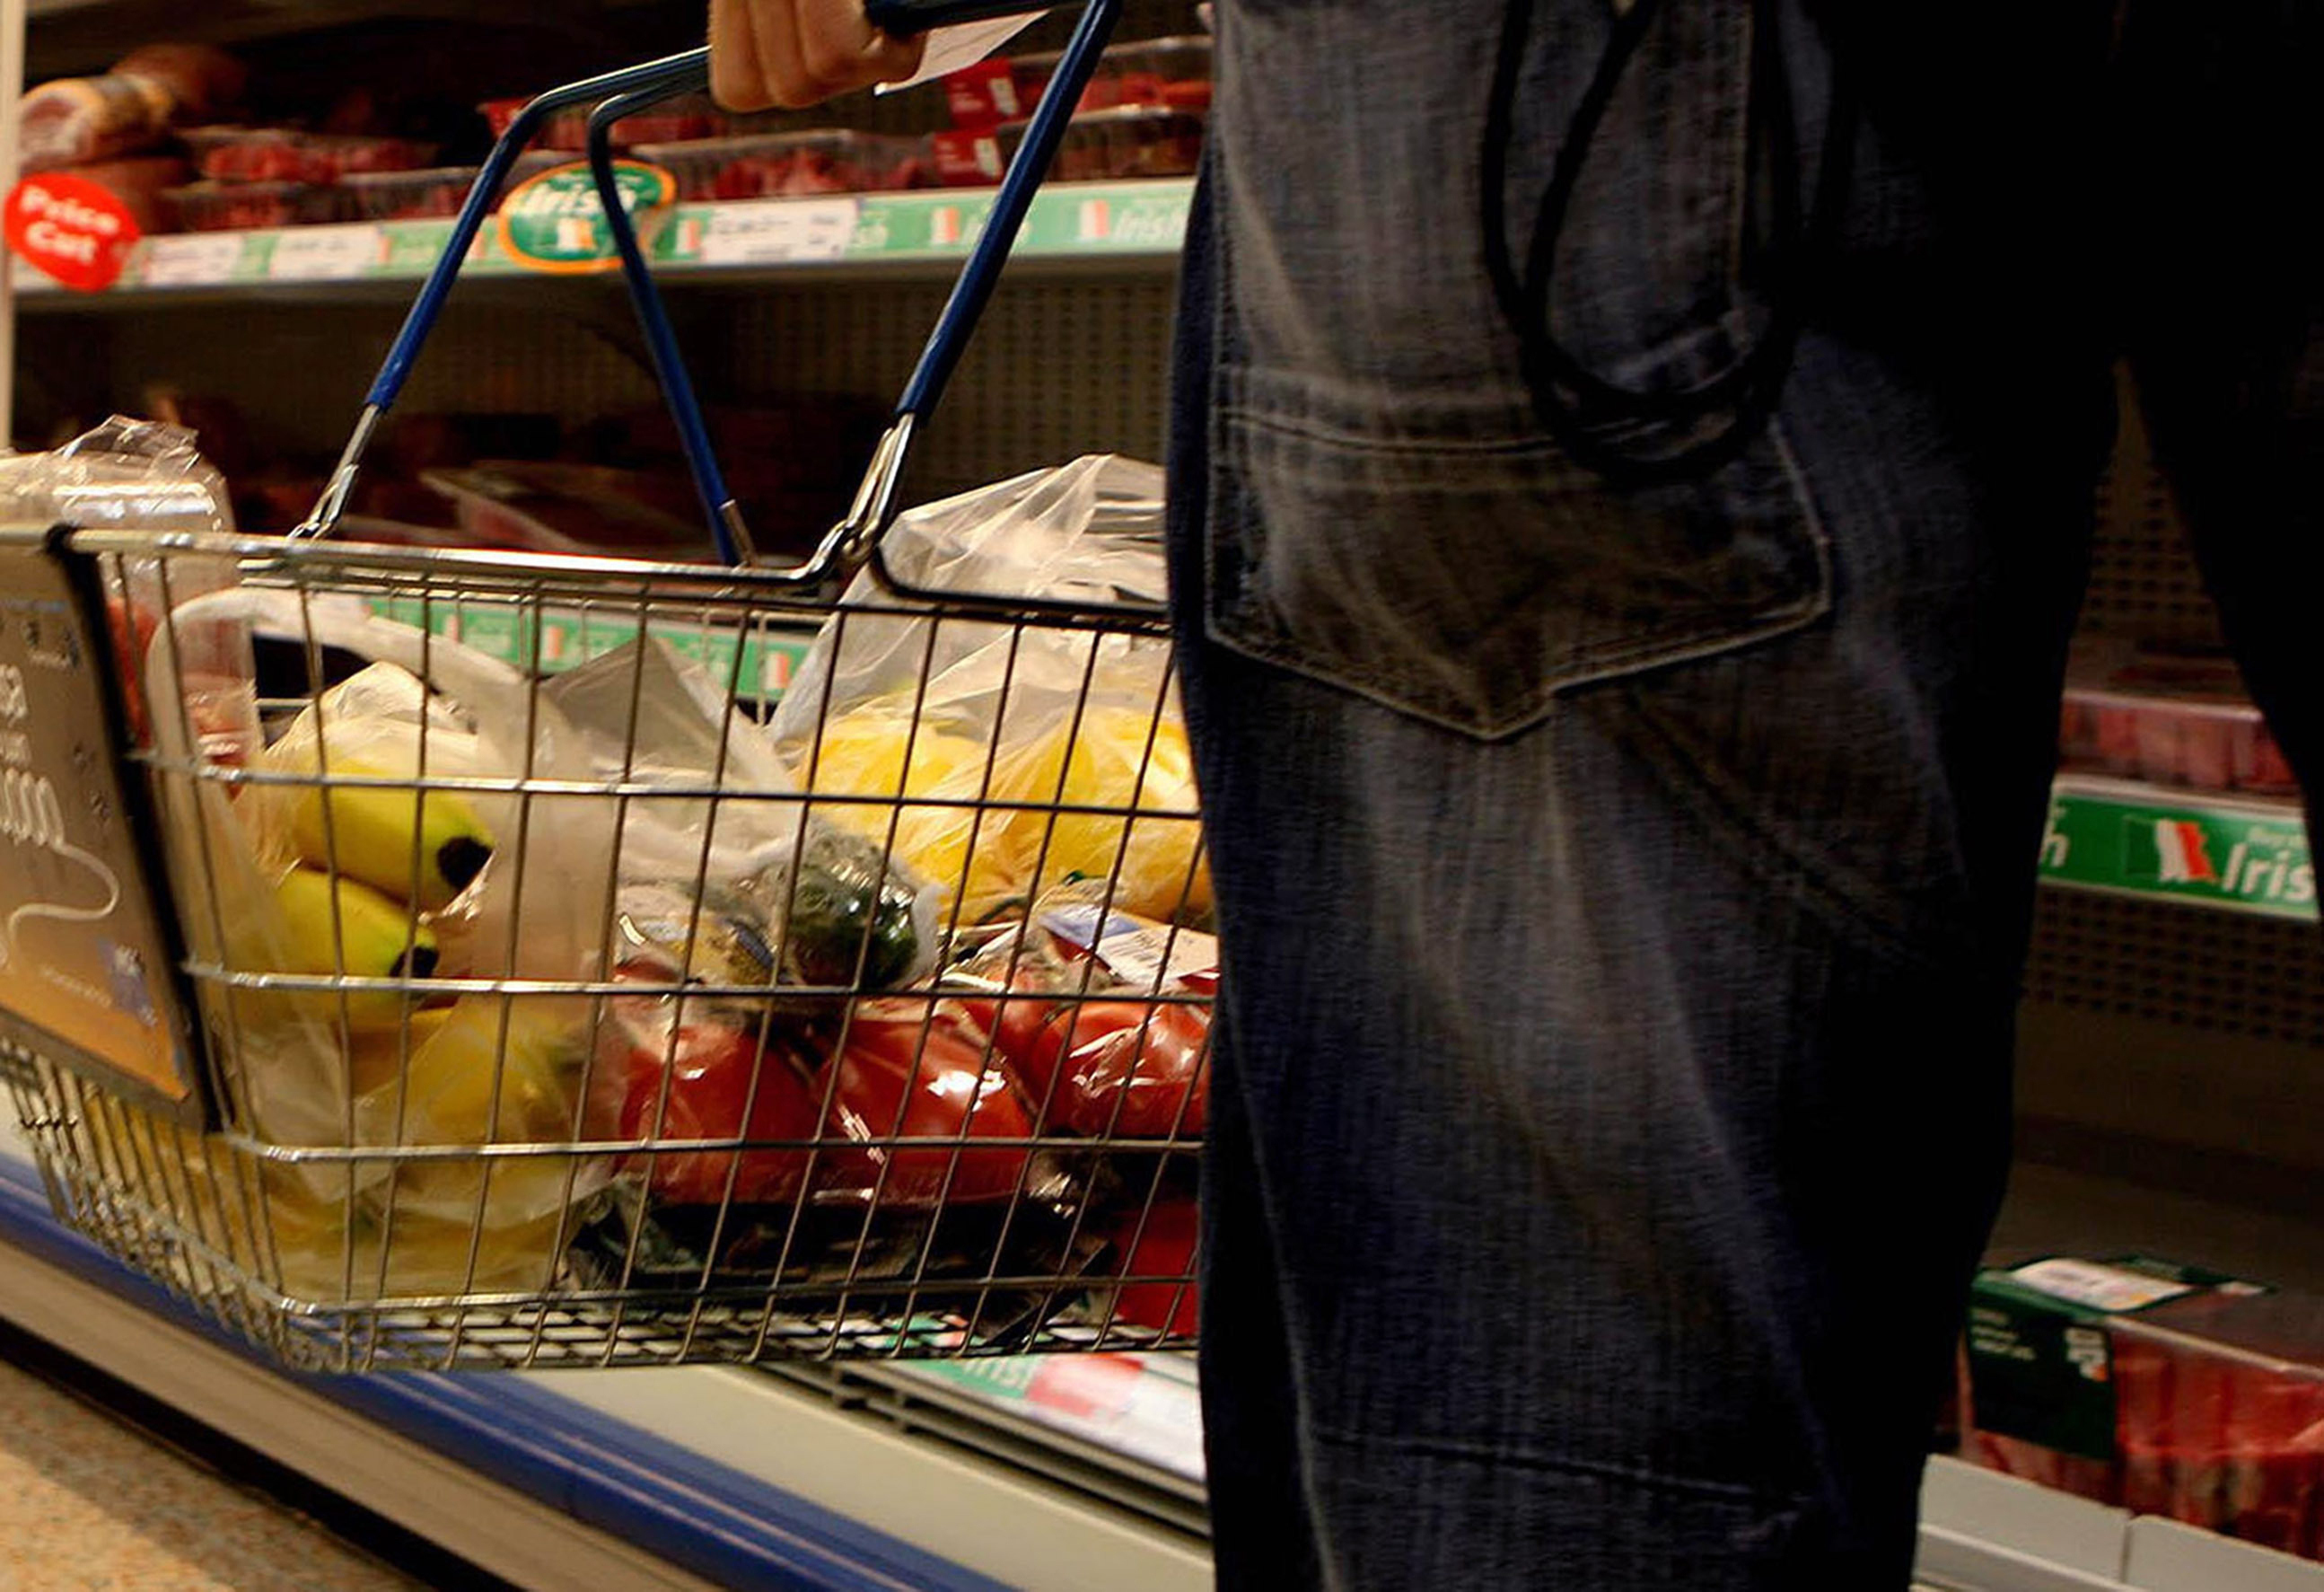 The average cost of grocery trips for at least 20 items ranges from £31.28 in bargain stores such as Poundland to £58.85 in Waitrose (Julien Behal/PA Wire)